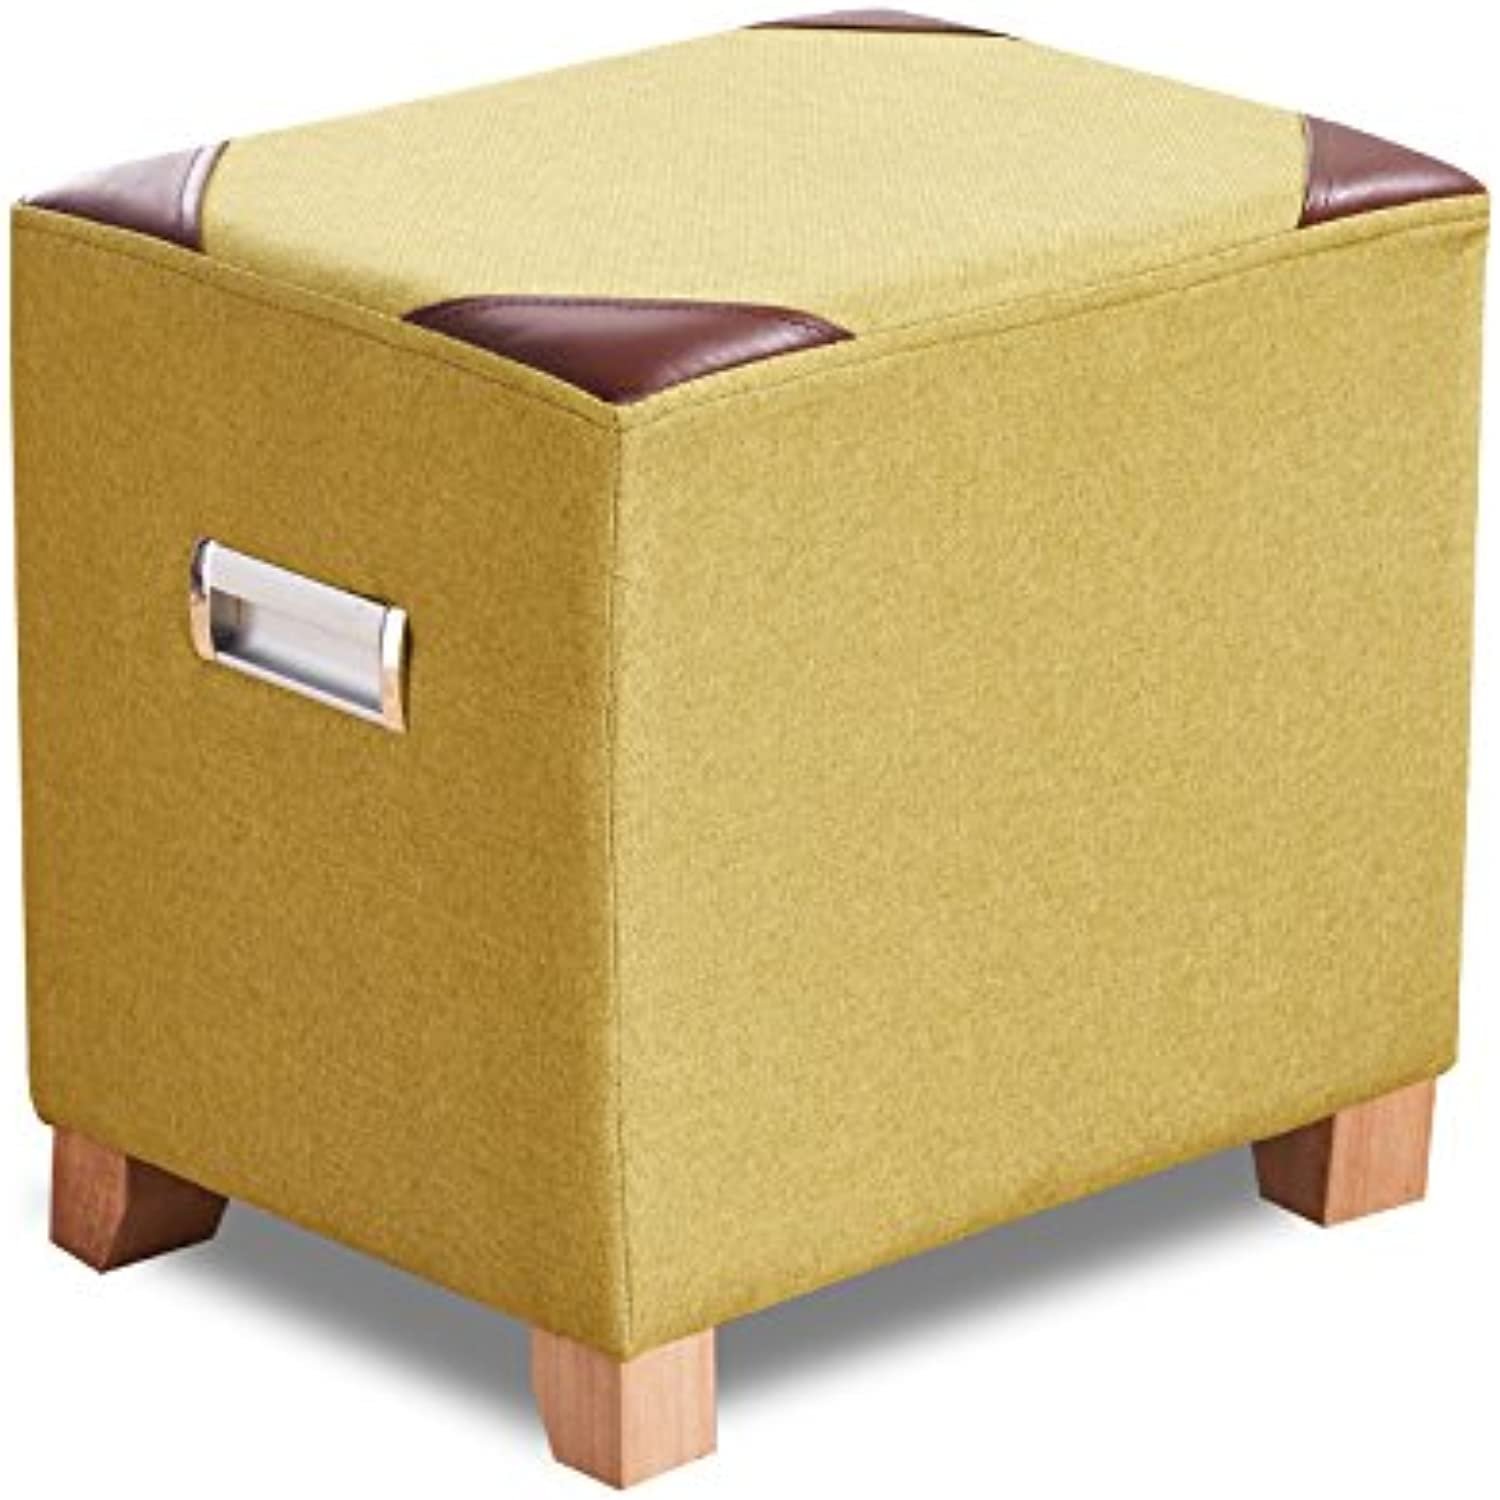 Solid Wood shoes Stool Creative Sofa Stool Fashion Home Stool Fabric Stool Stool Makeup Stool Double Handle 0522A (color   Yellow)